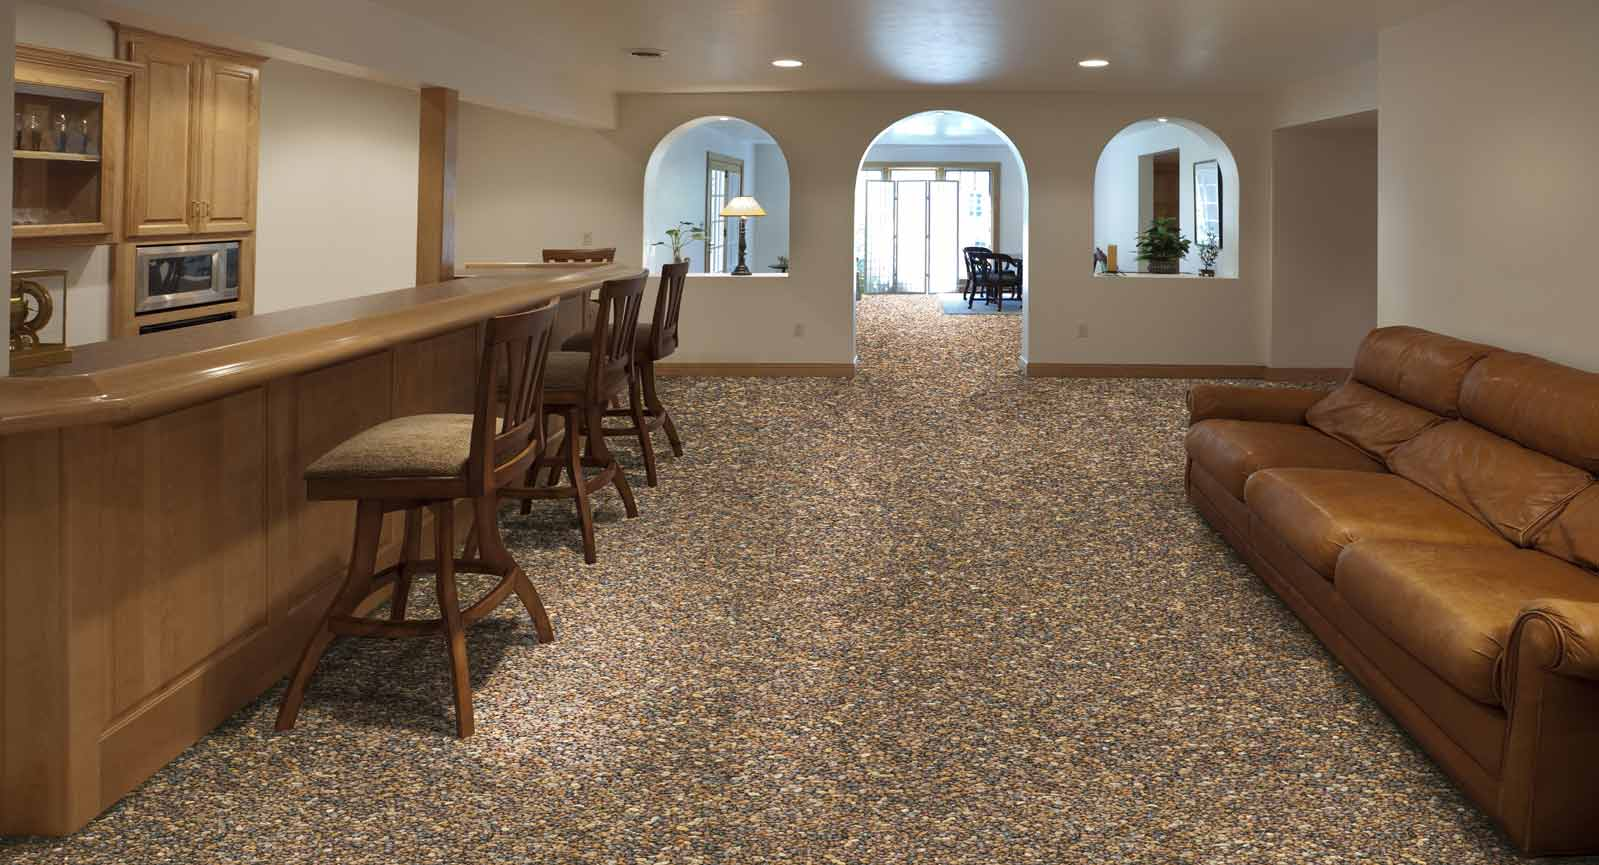 NATURE STONE Basement Flooring Nature Stone - What is the best flooring to use in a basement